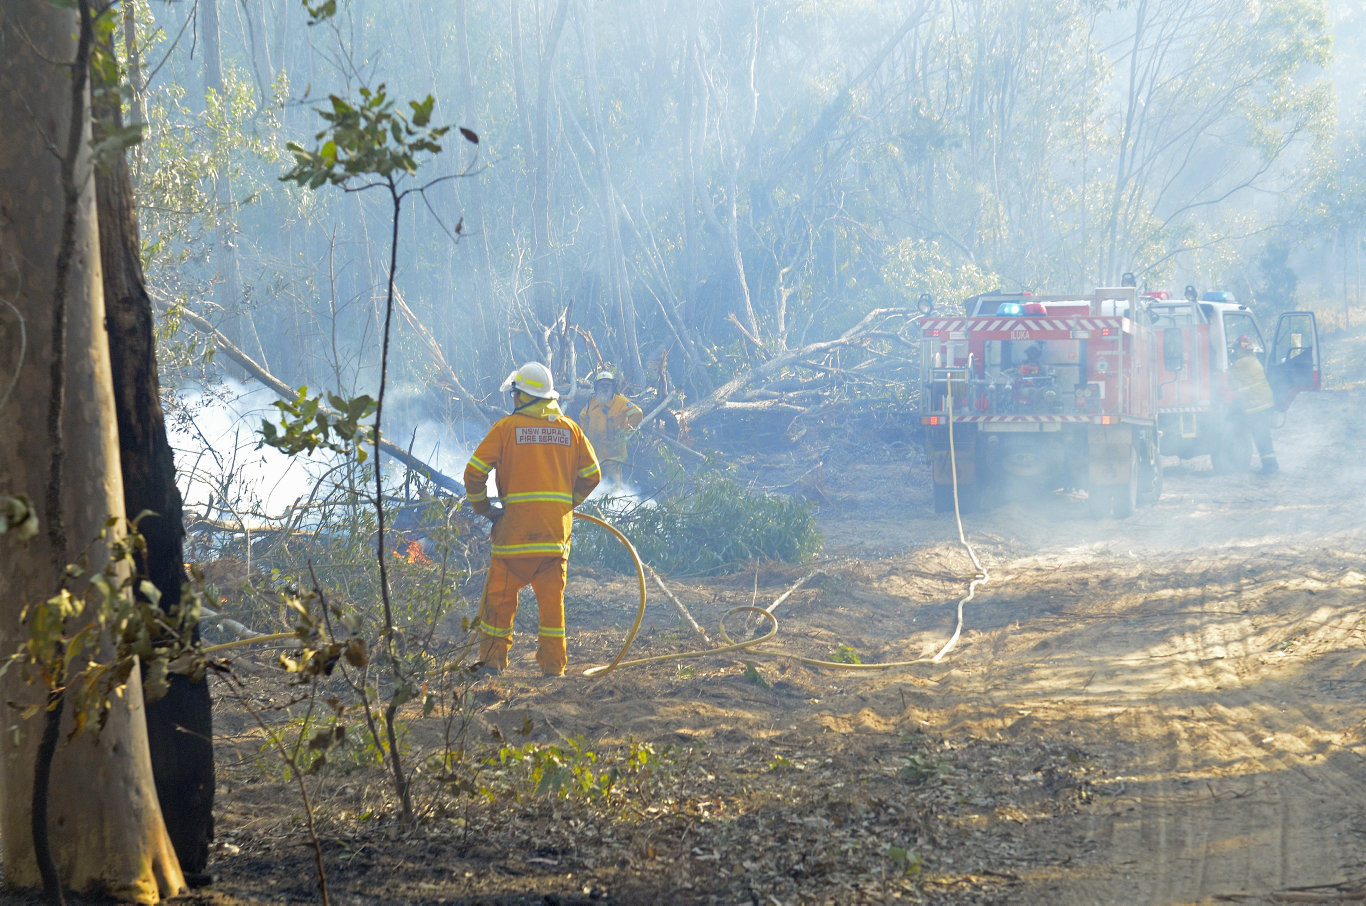 Clarence Valley Rural Fire Service crews battle to put out a spot fire that jumped containment lines of an out of control bushfire at Whiteman Creek west of Grafton on Saturday, 10th August, 2019.